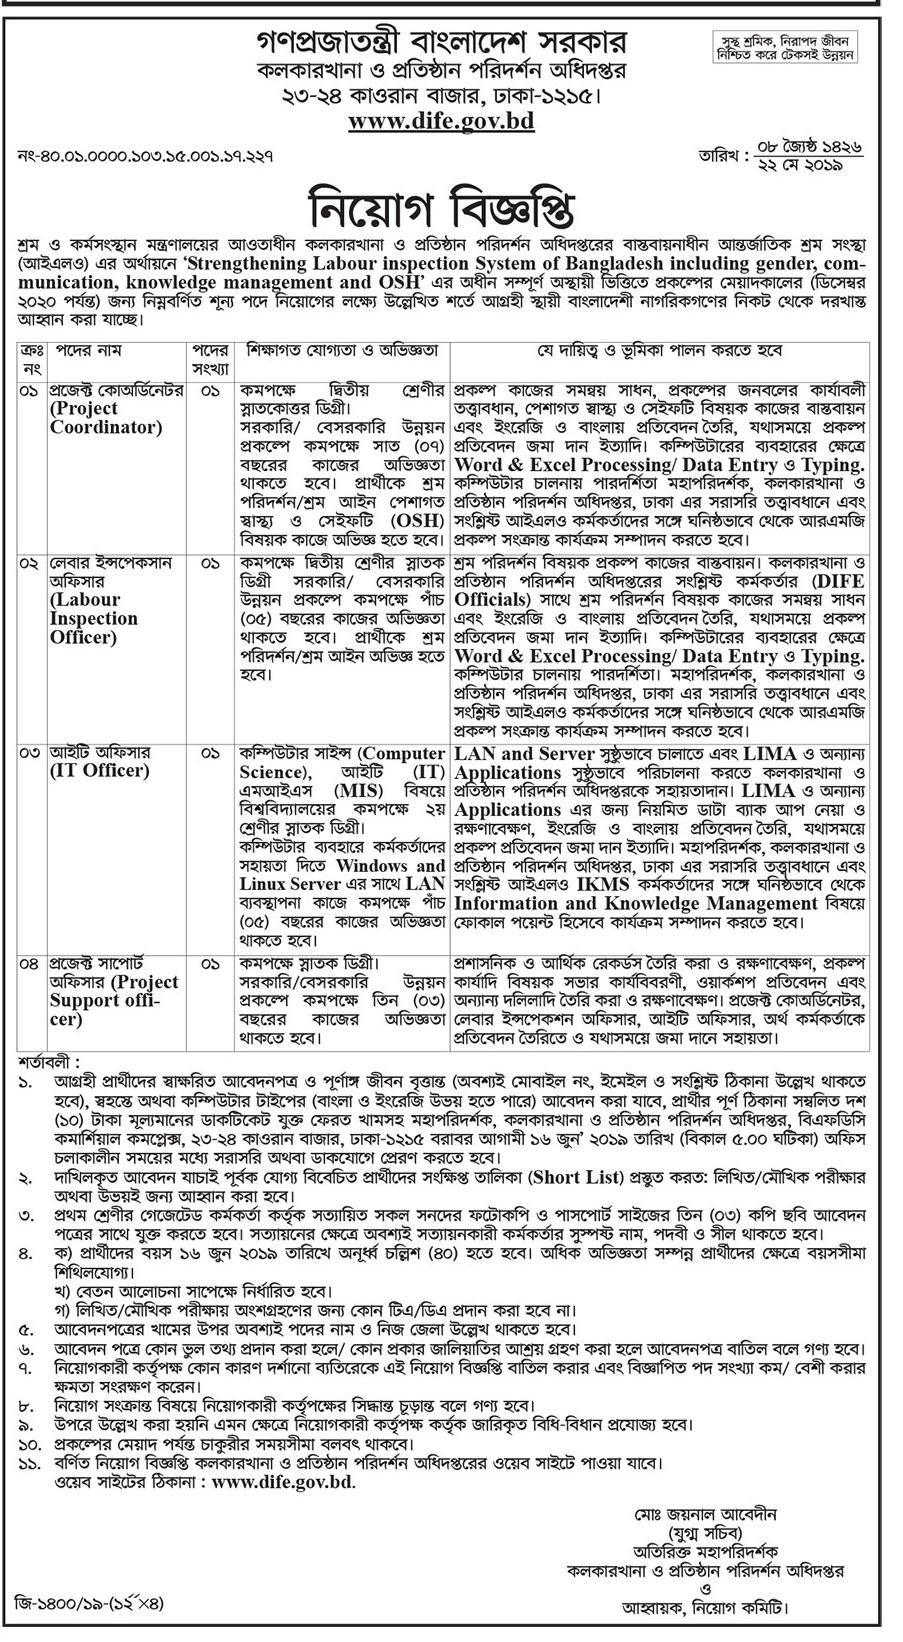 Ministry of Labour and Employment (MOLE) Job Circular 2018